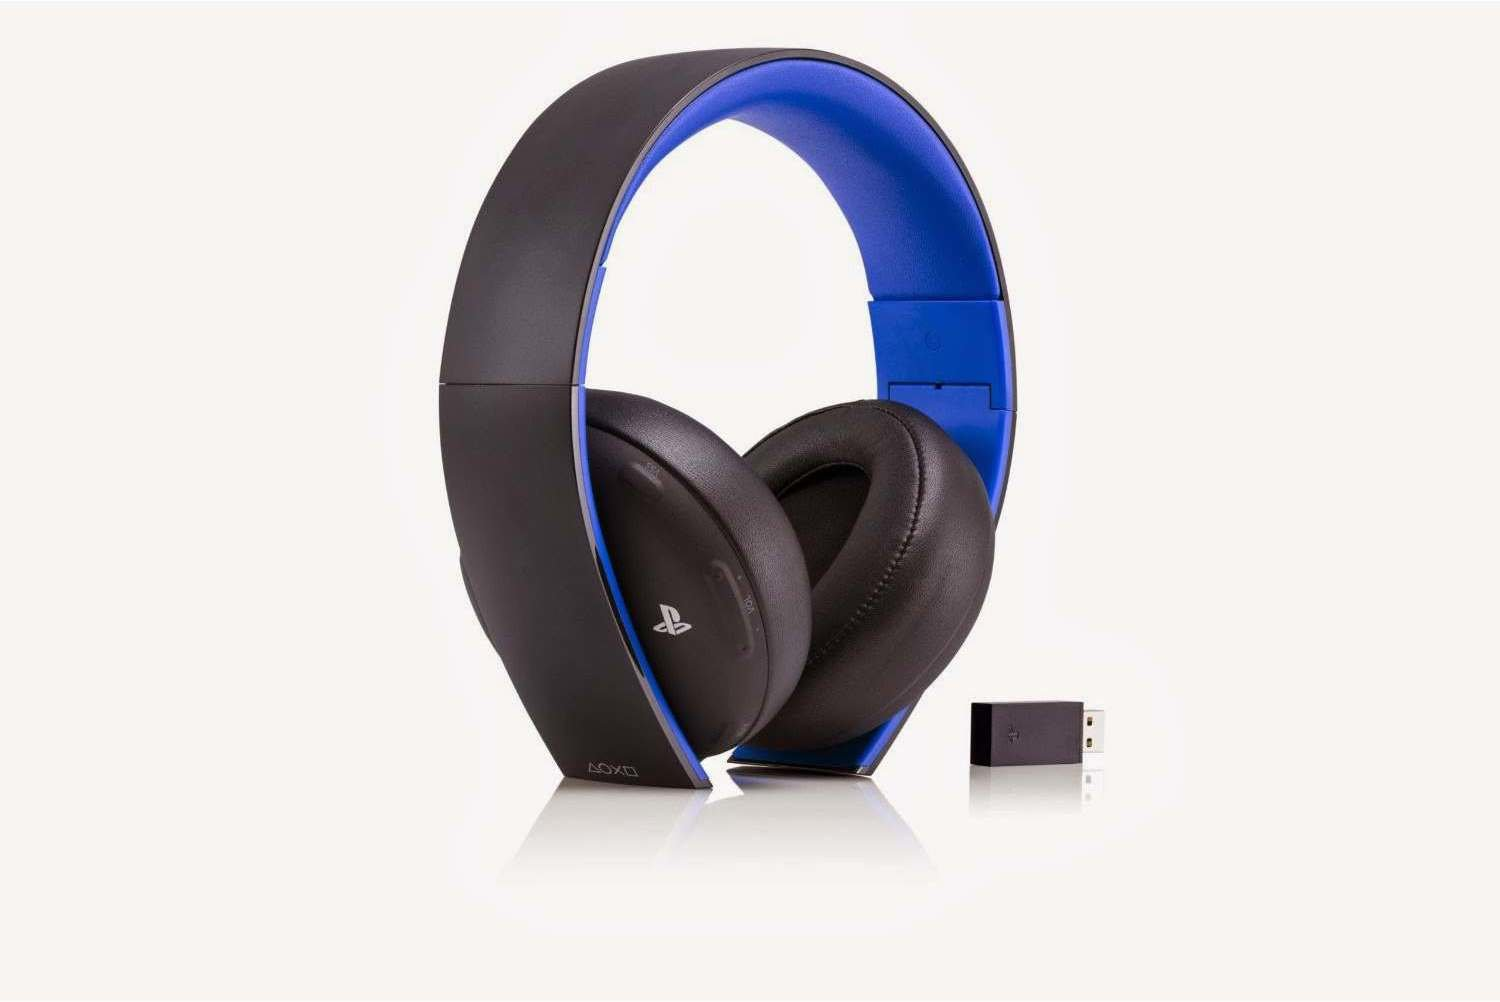 sony gold wireless stereo headset 2 0 for ps4 test. Black Bedroom Furniture Sets. Home Design Ideas